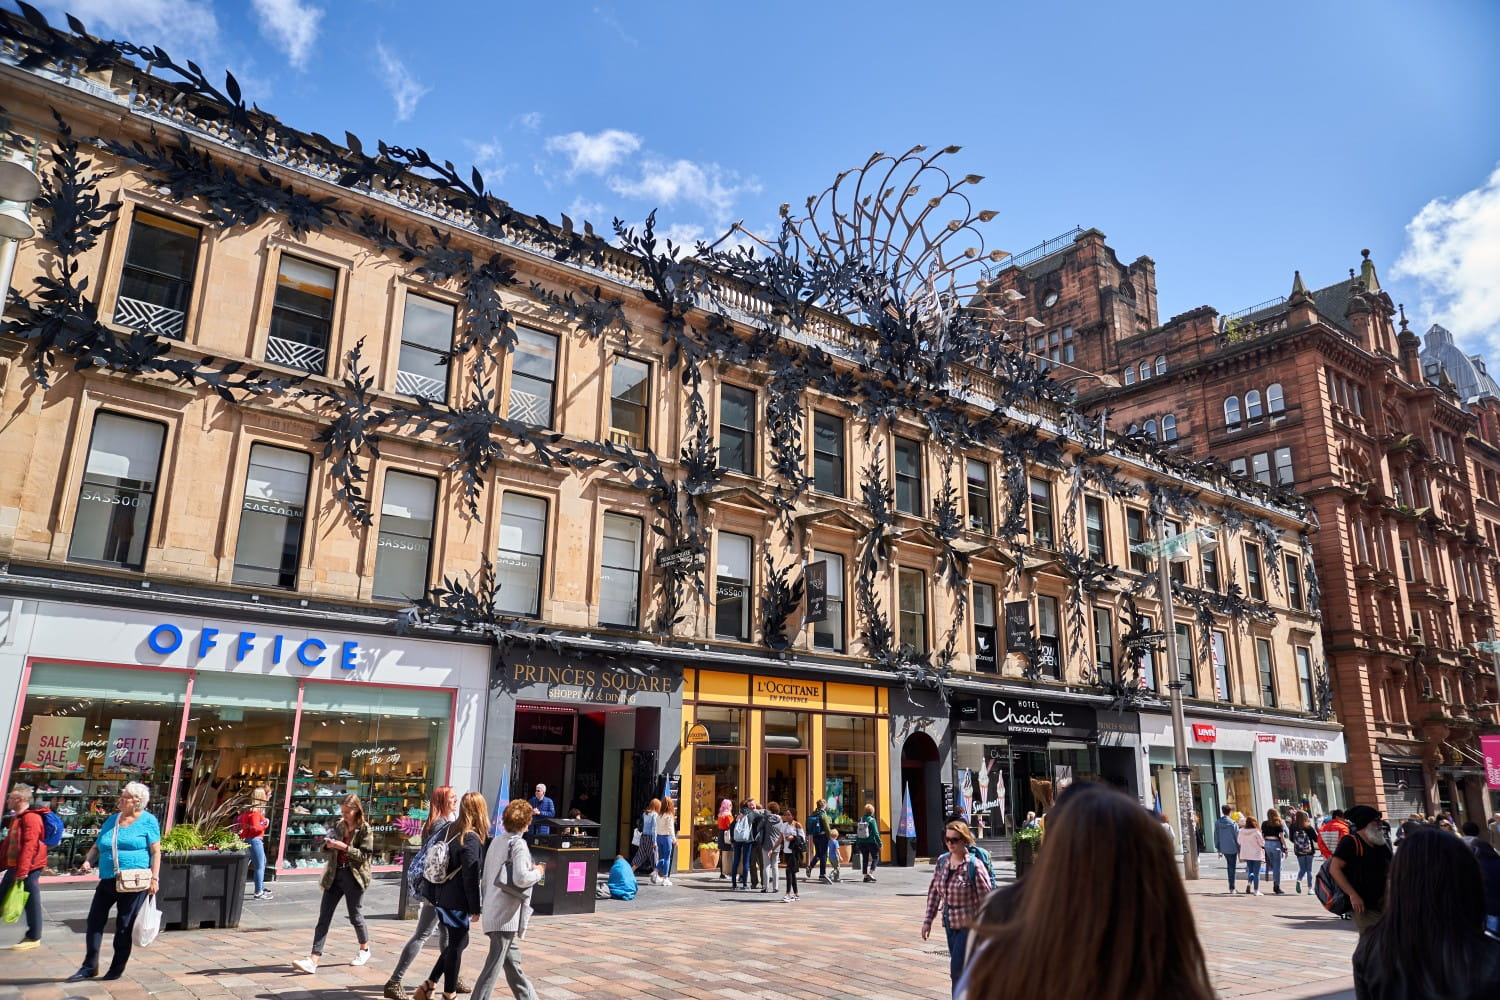 Created by Alan Dawson, the peacock's sculpture is made in coloured hand-forged wrought iron and steel, extending to its colossal dimensions of 10m high and 20m wide. toshiepix